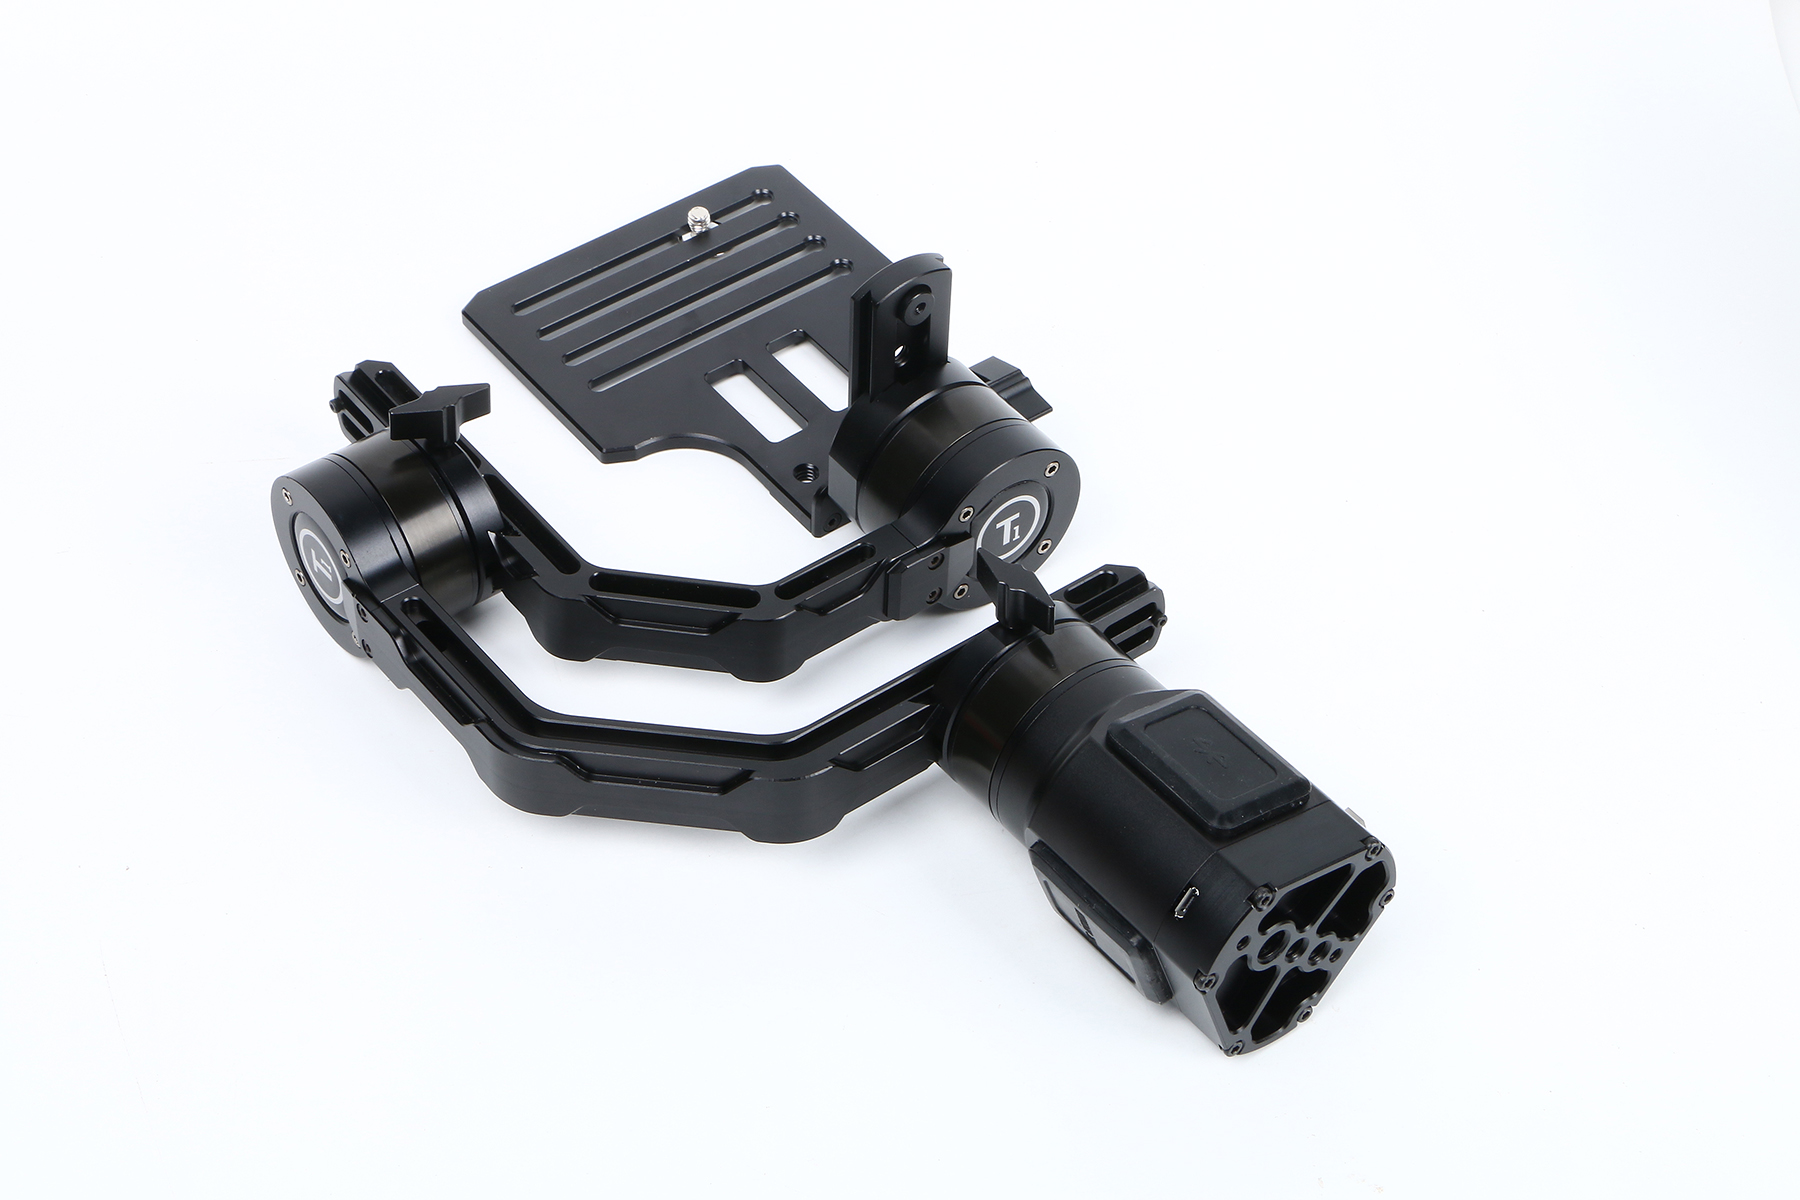 Ti 3-Axis Gimbal Handheld Stabilizer for small DSLR Cameras - Click Image to Close